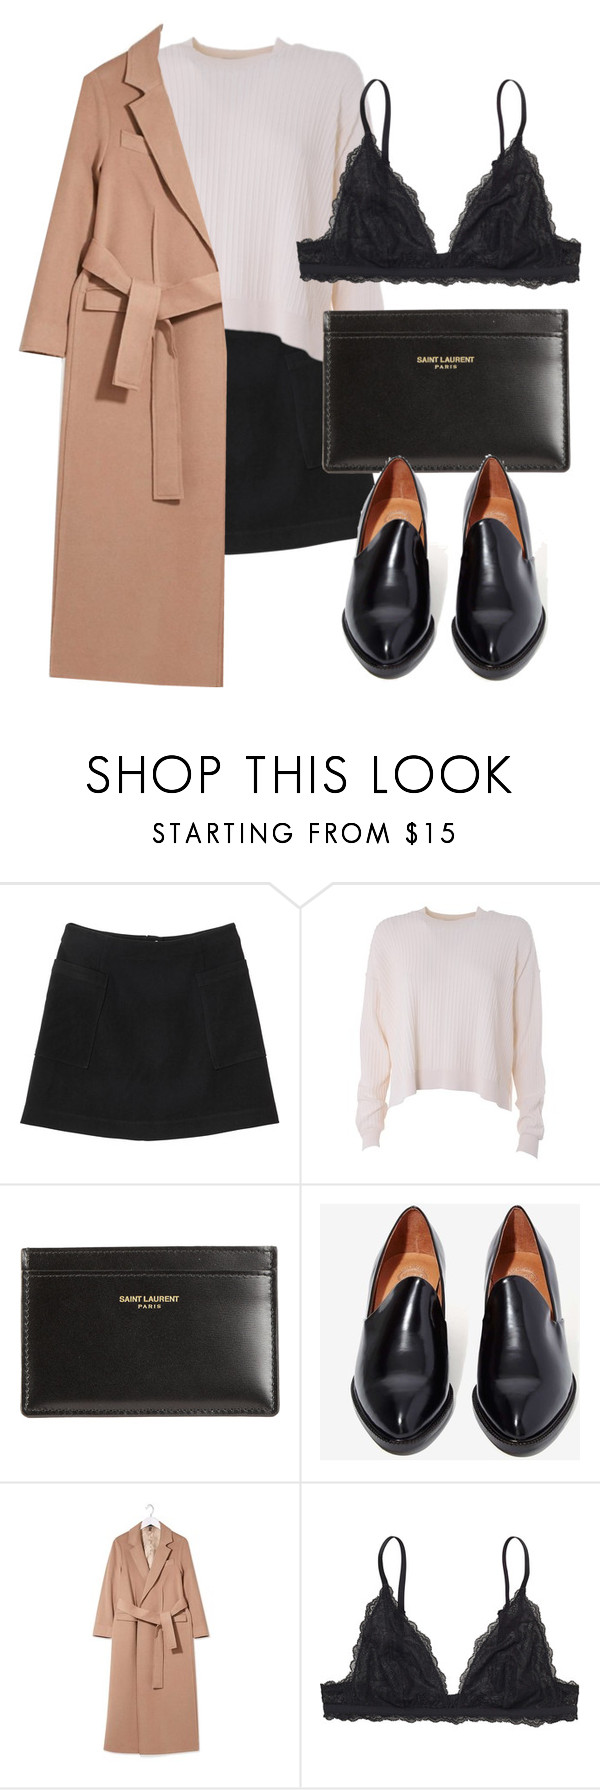 Untitled #5665 by laurenmboot on Polyvore featuring mode, Acne Studios, Topshop, Monki, Jeffrey Campbell and Yves Saint Laurent